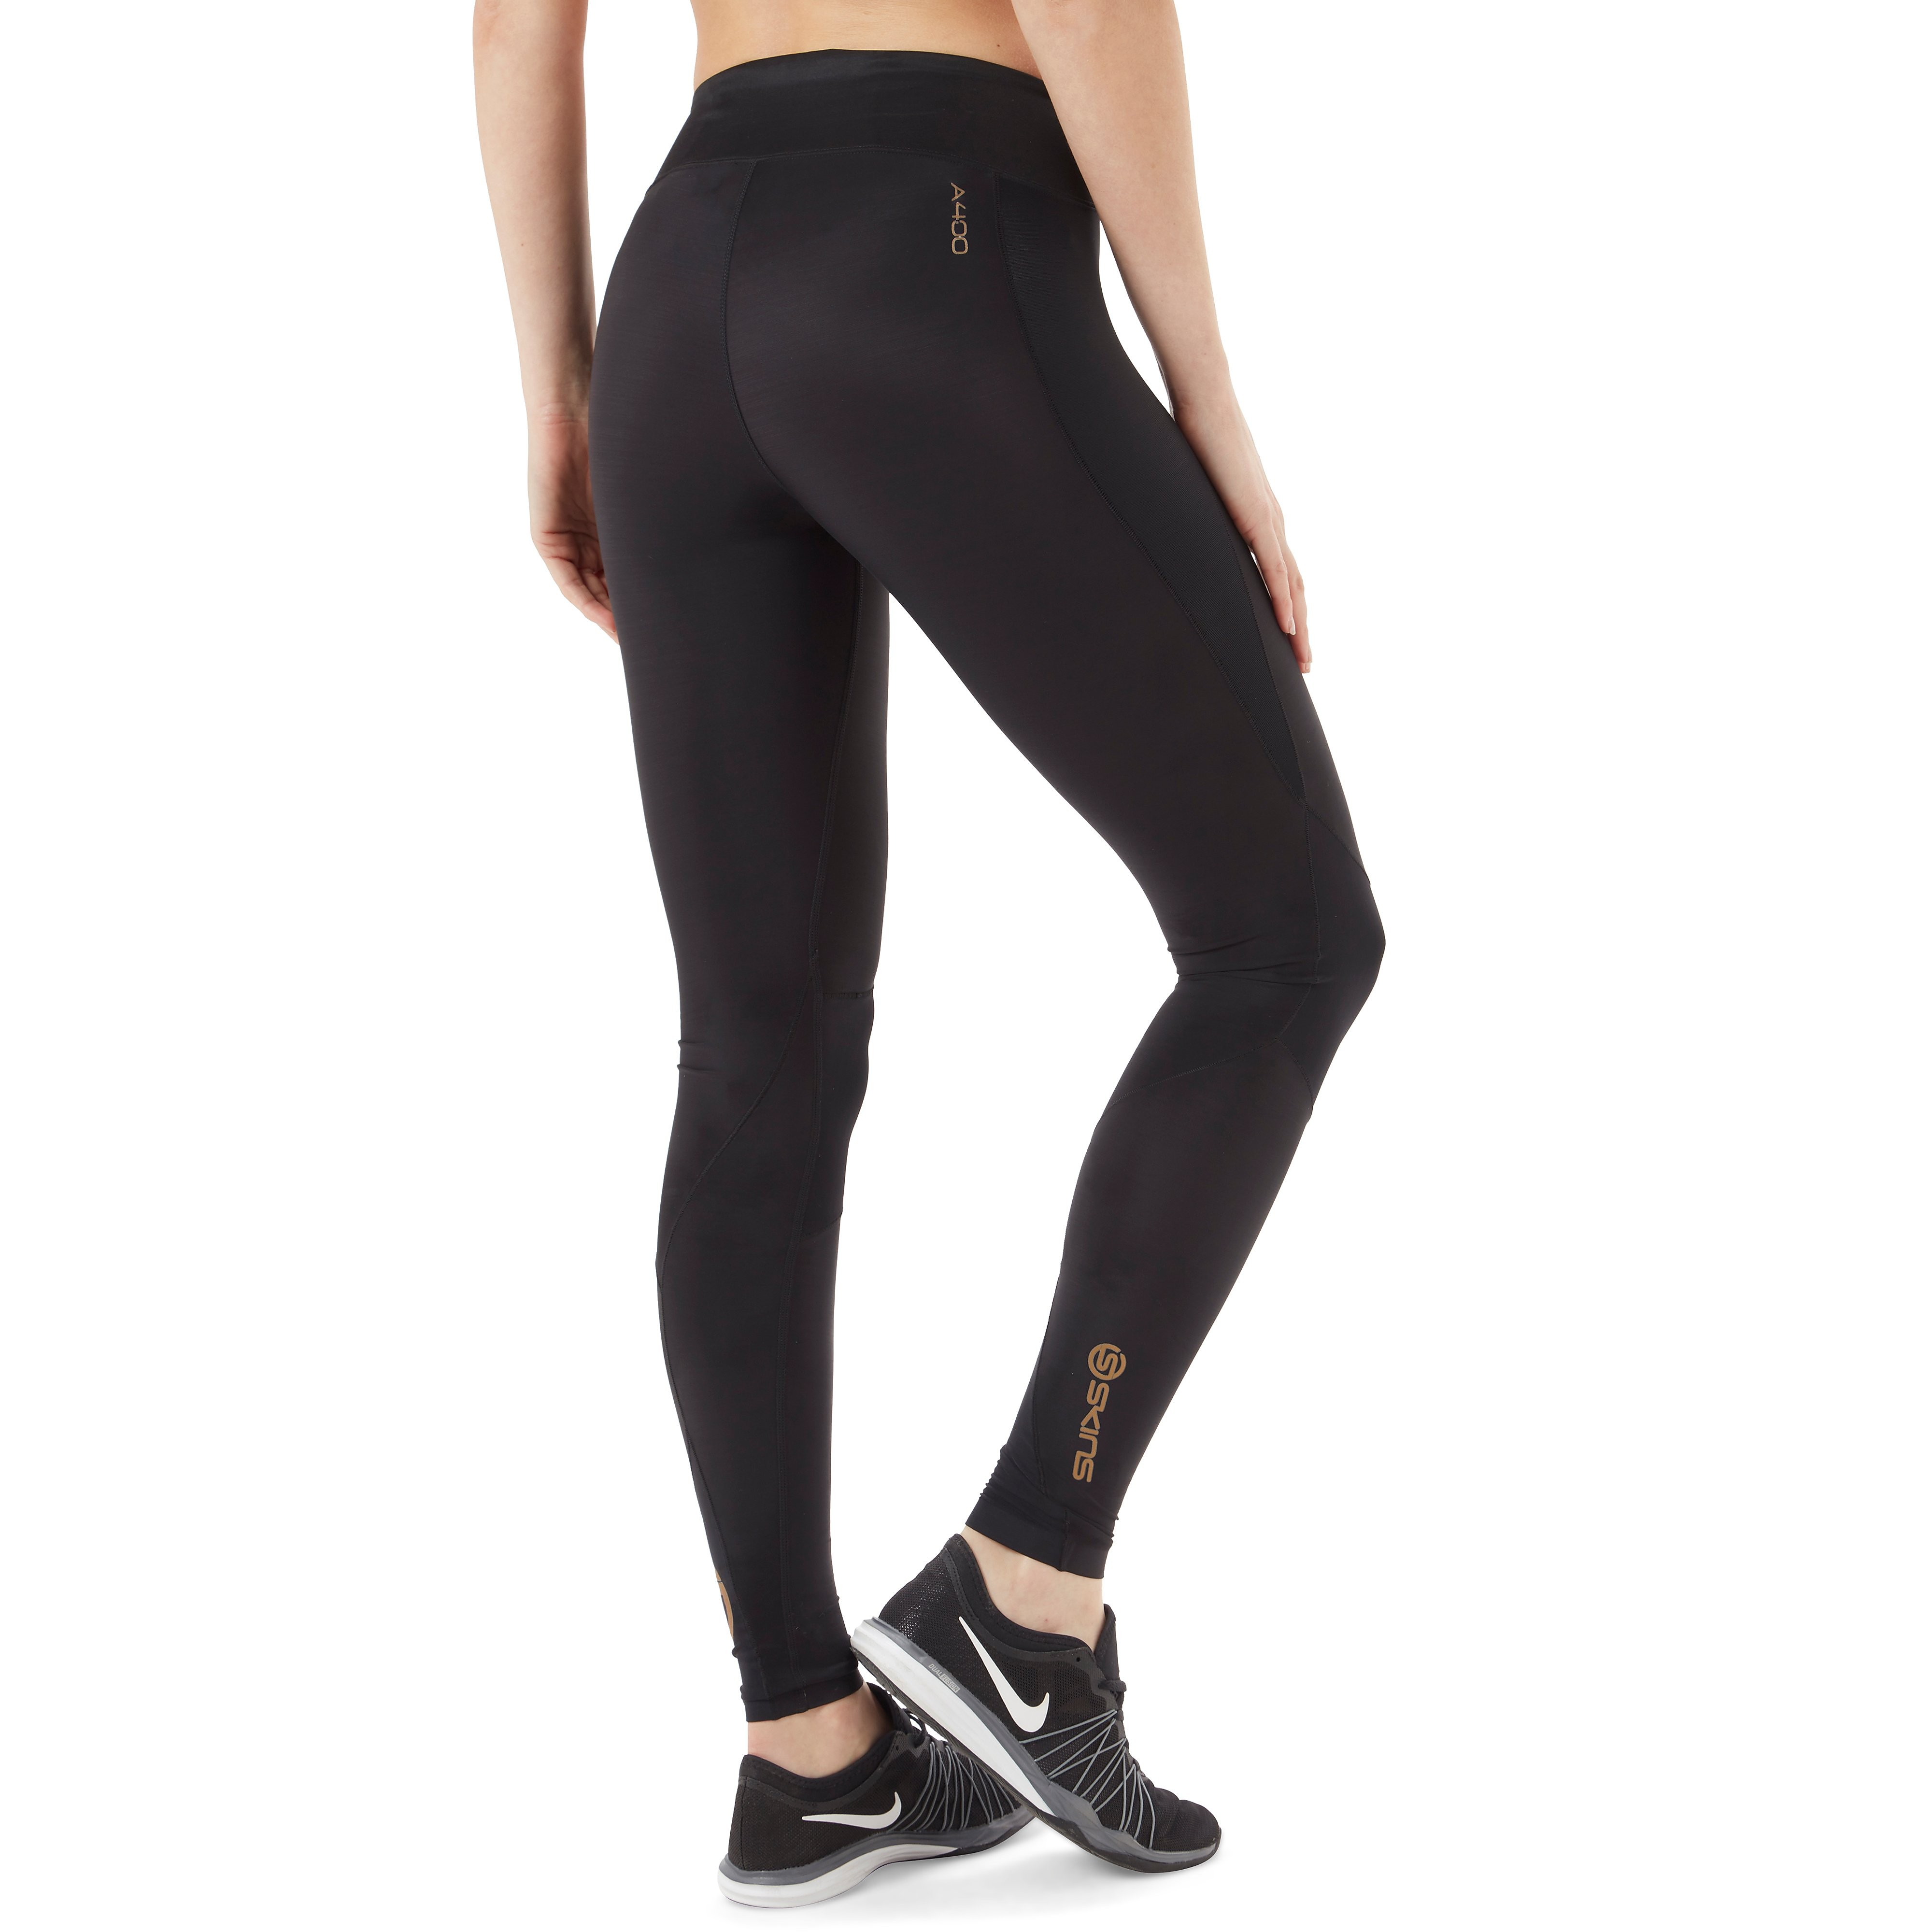 Skins A400 Long Women's Training Tights